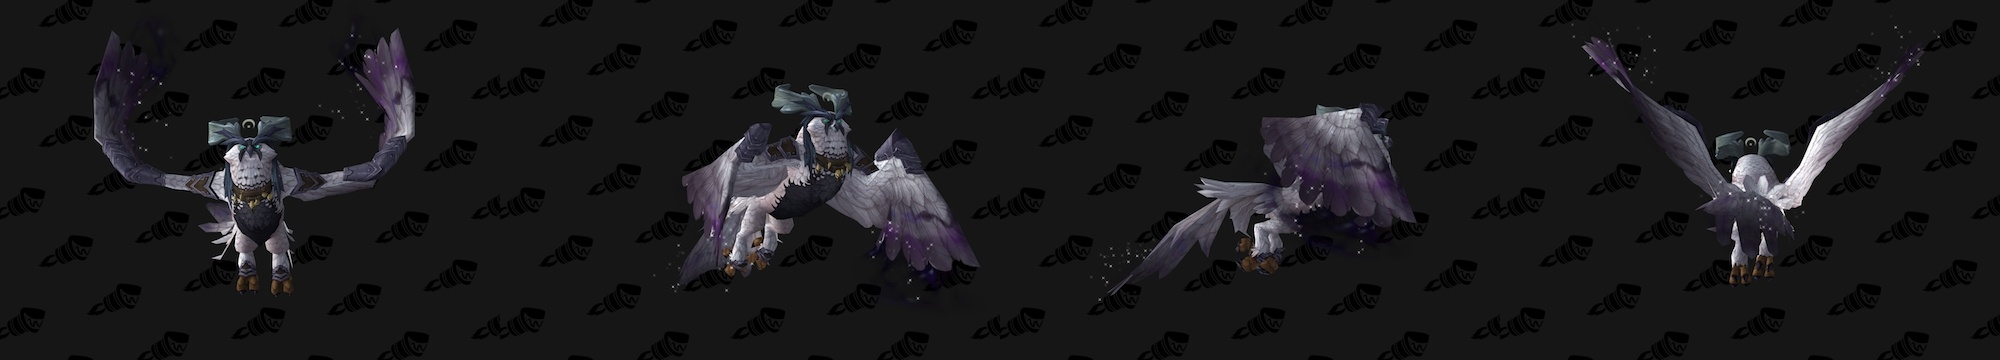 Druid Class Mount and Quest - Archdruid's Lunarwing Form - Wowhead ...